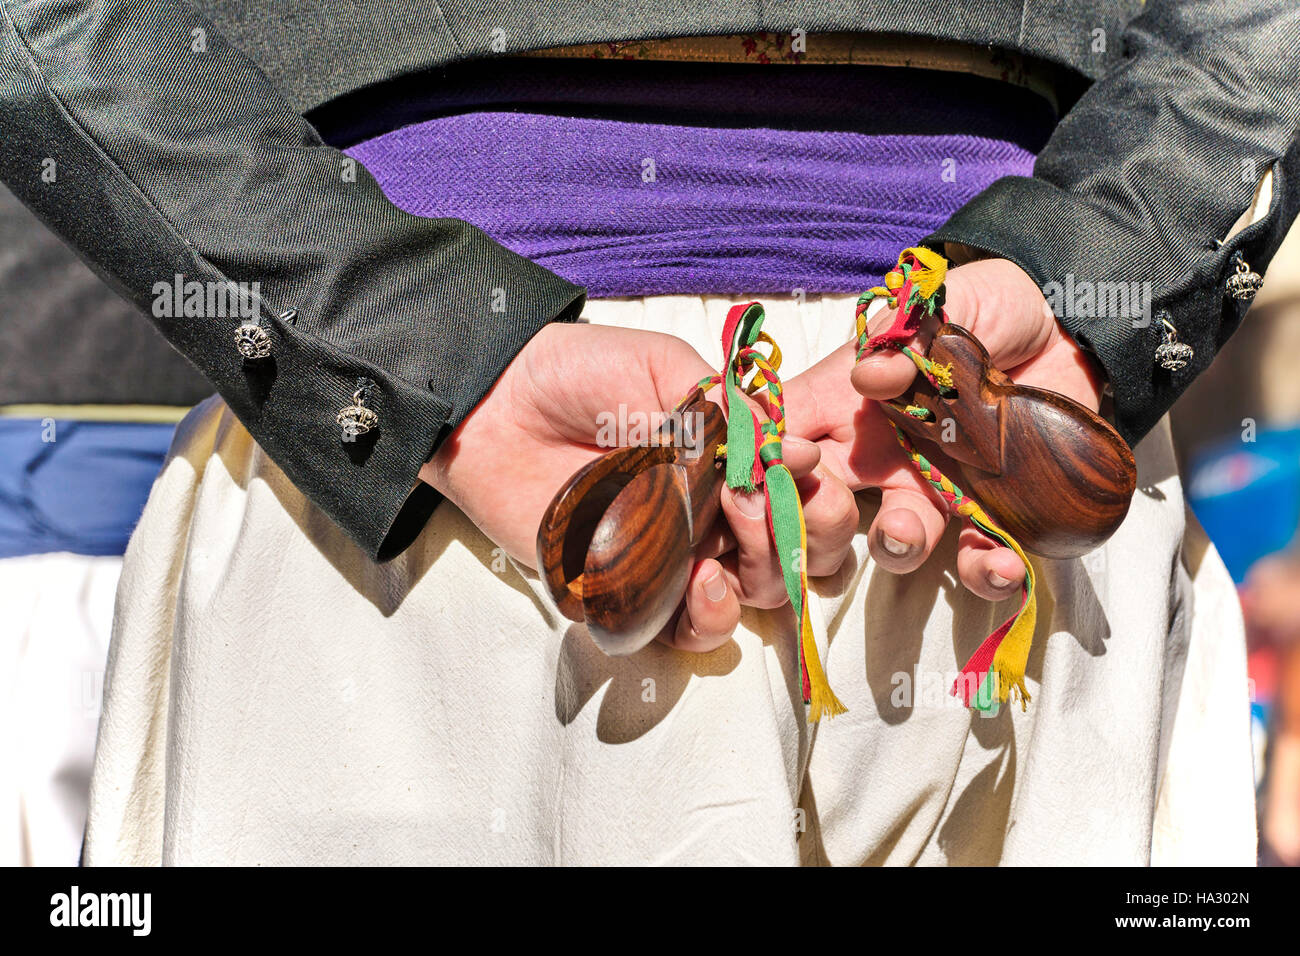 Spanish dancer with castanuelas instruments (castanets ) in his hands - Stock Image